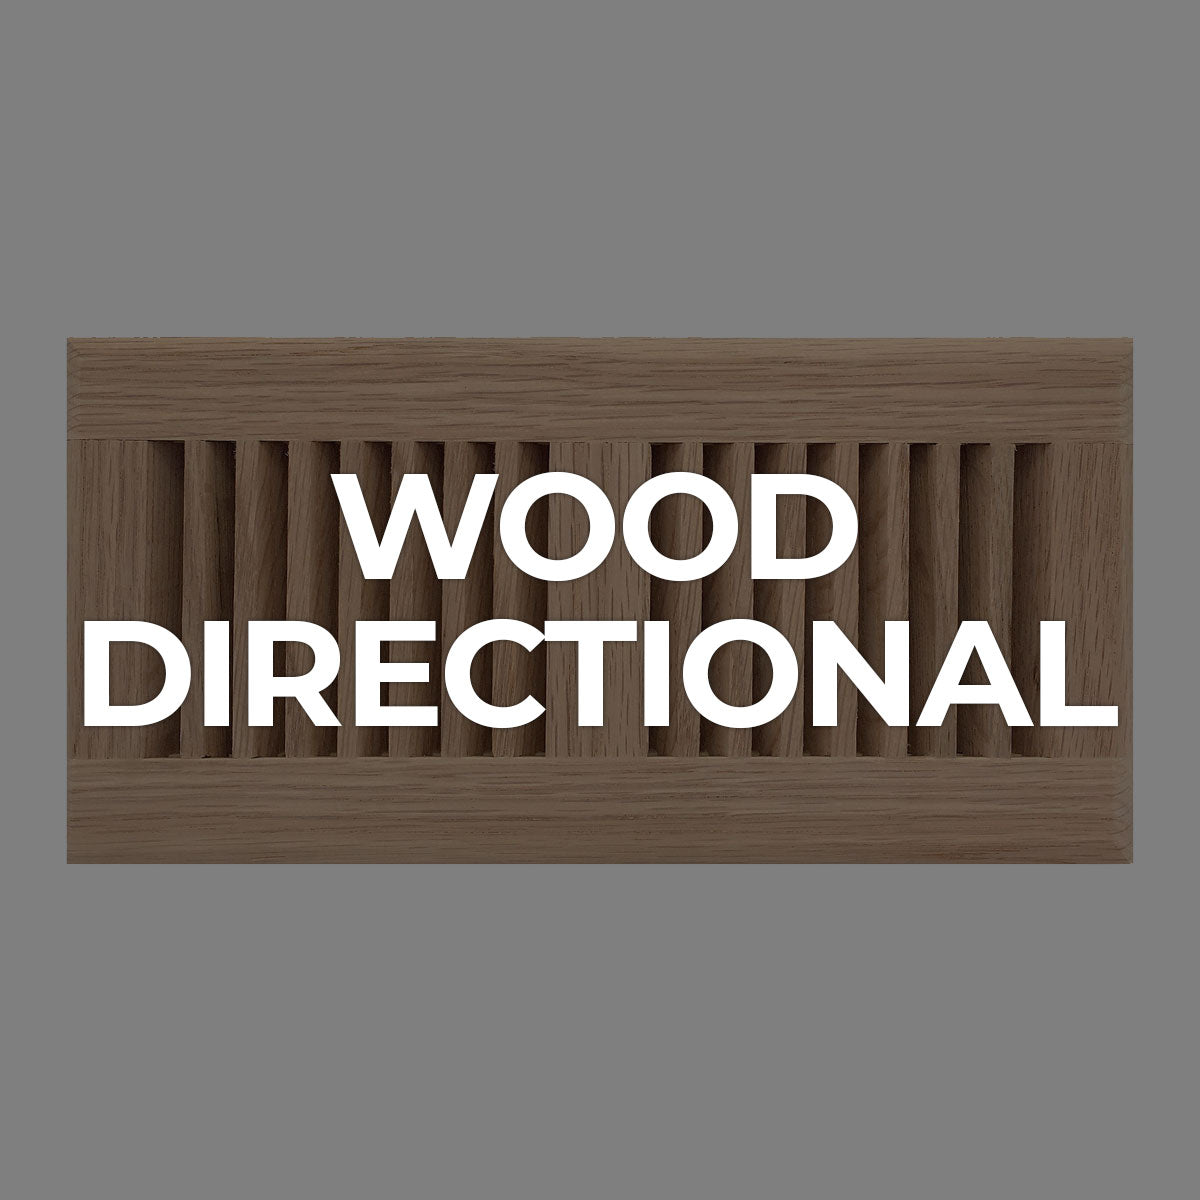 Supply / Wood Directional